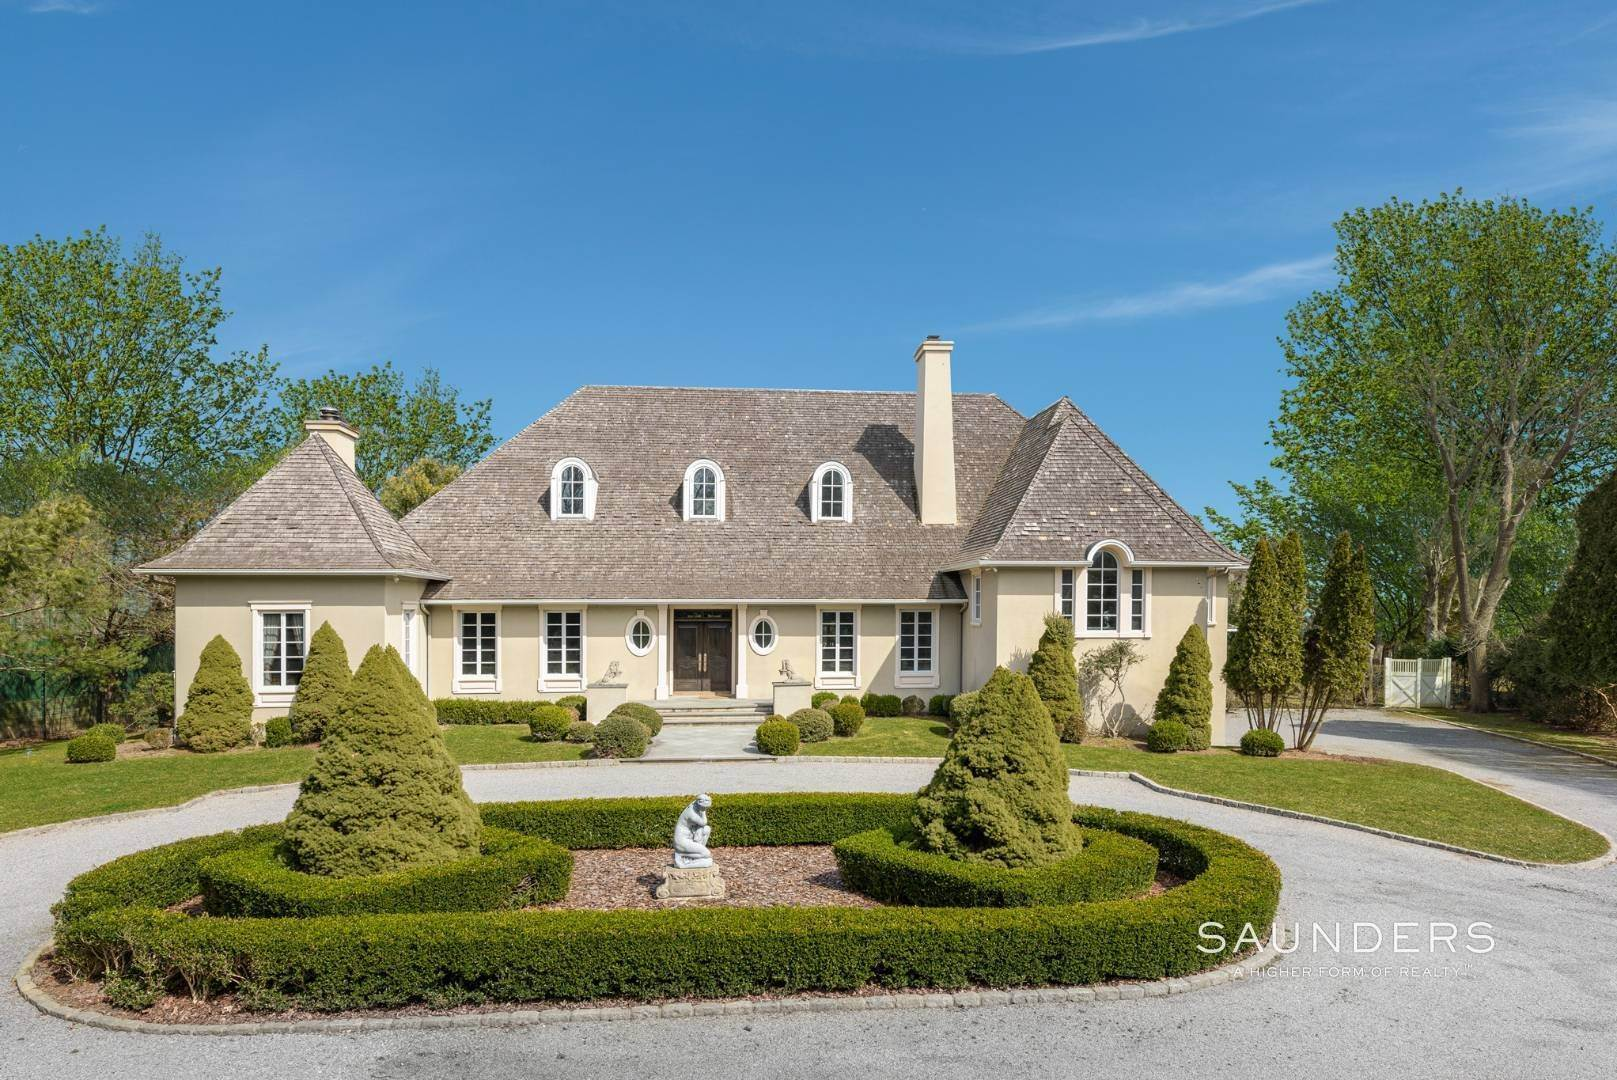 Single Family Homes for Sale at French Masterpiece On Hither Lane East Hampton, East Hampton Town, NY 11937